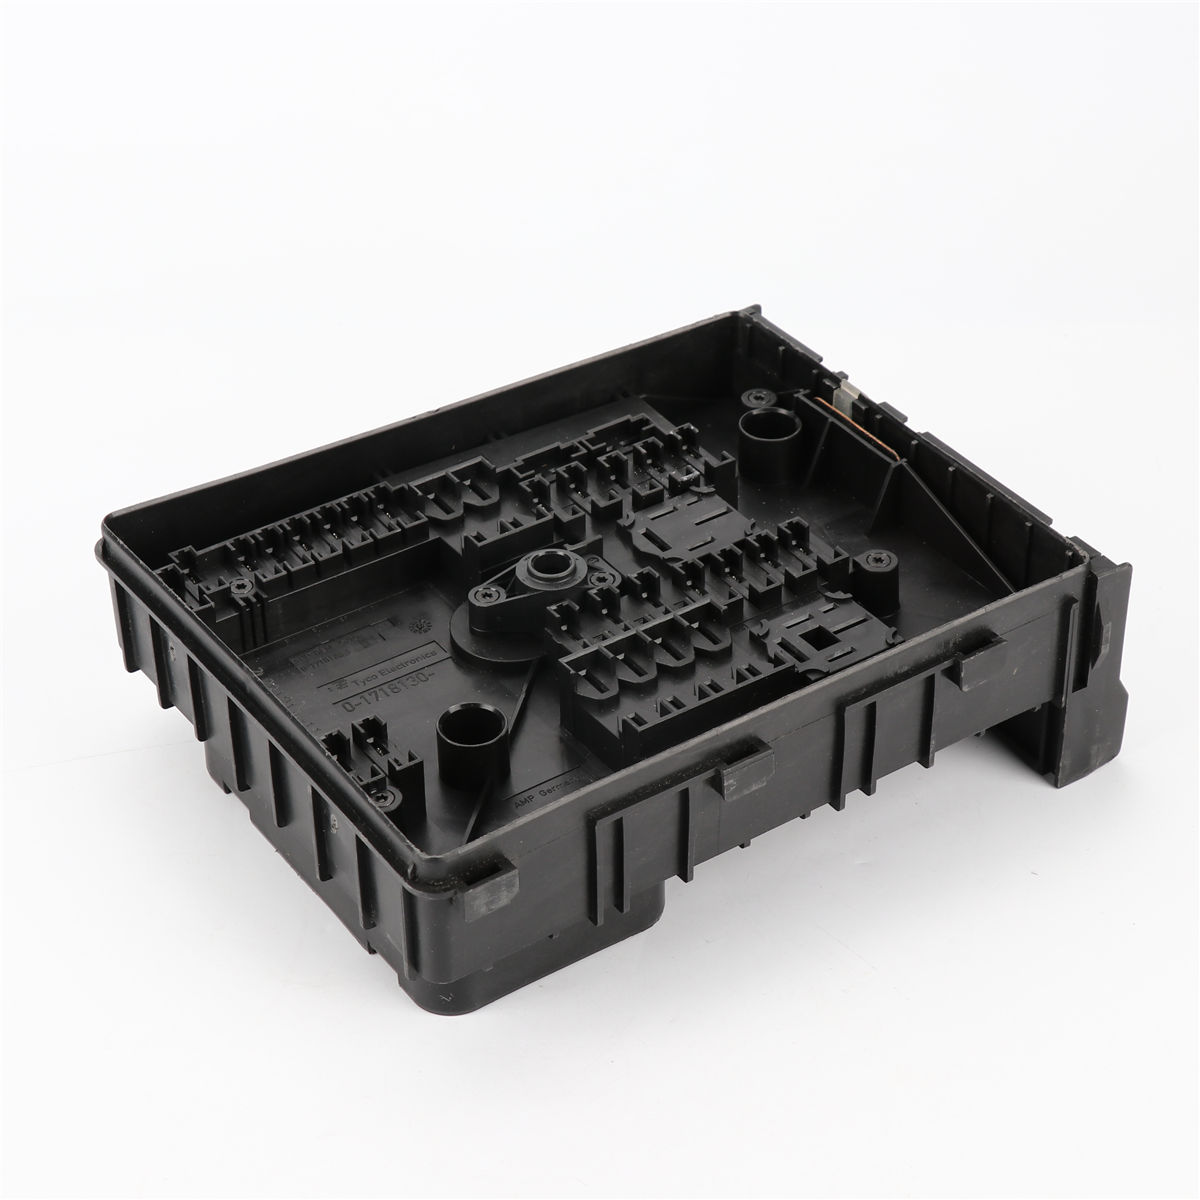 1pcs relay fuse box board for vw jetta golf mk5 eos rabbit audi a3 seat skoda 1k0 937 125 d [ 1200 x 1200 Pixel ]